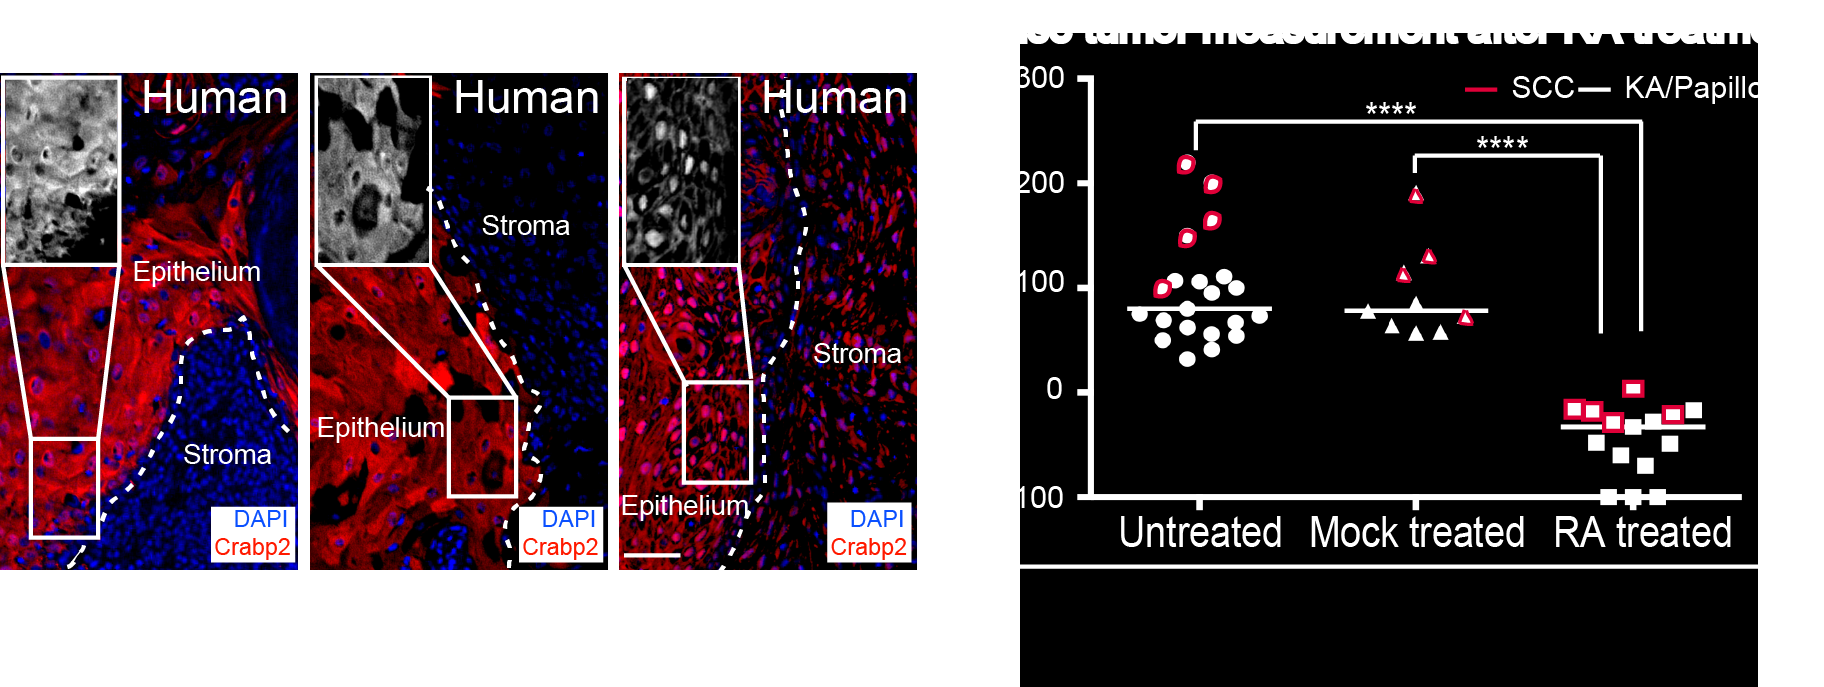 Figure 2. On the left, the Retinoic Acid (RA) pathway is activated during the regression of the human benign KA tumors as visualized by the nuclear localization of a RA component, Crabp2 (in red) in the IF stainings. On the right, RA treatment on both benign and malignant tumors lead to tumor regression.